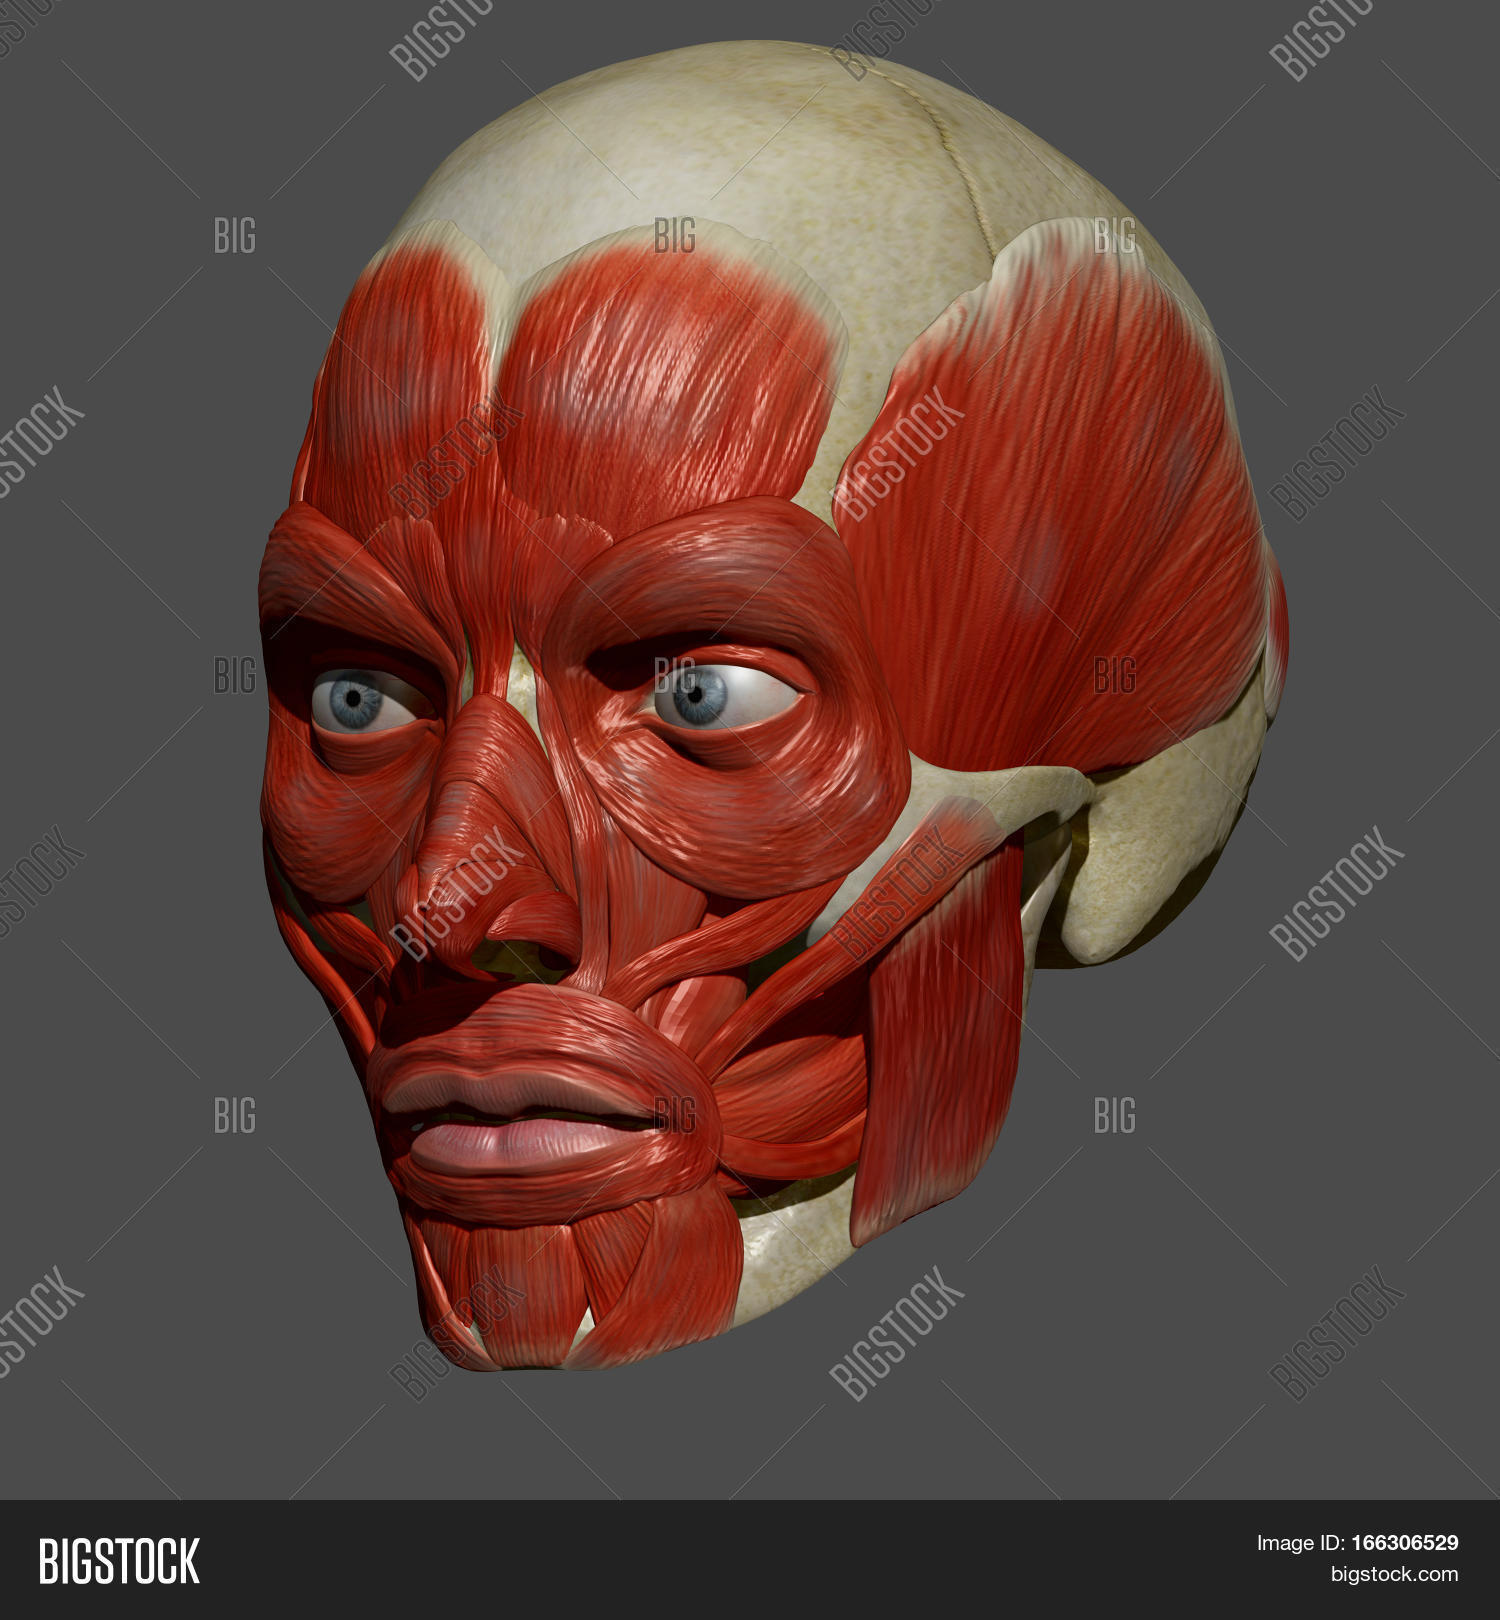 Facial Muscles Group Image Photo Free Trial Bigstock